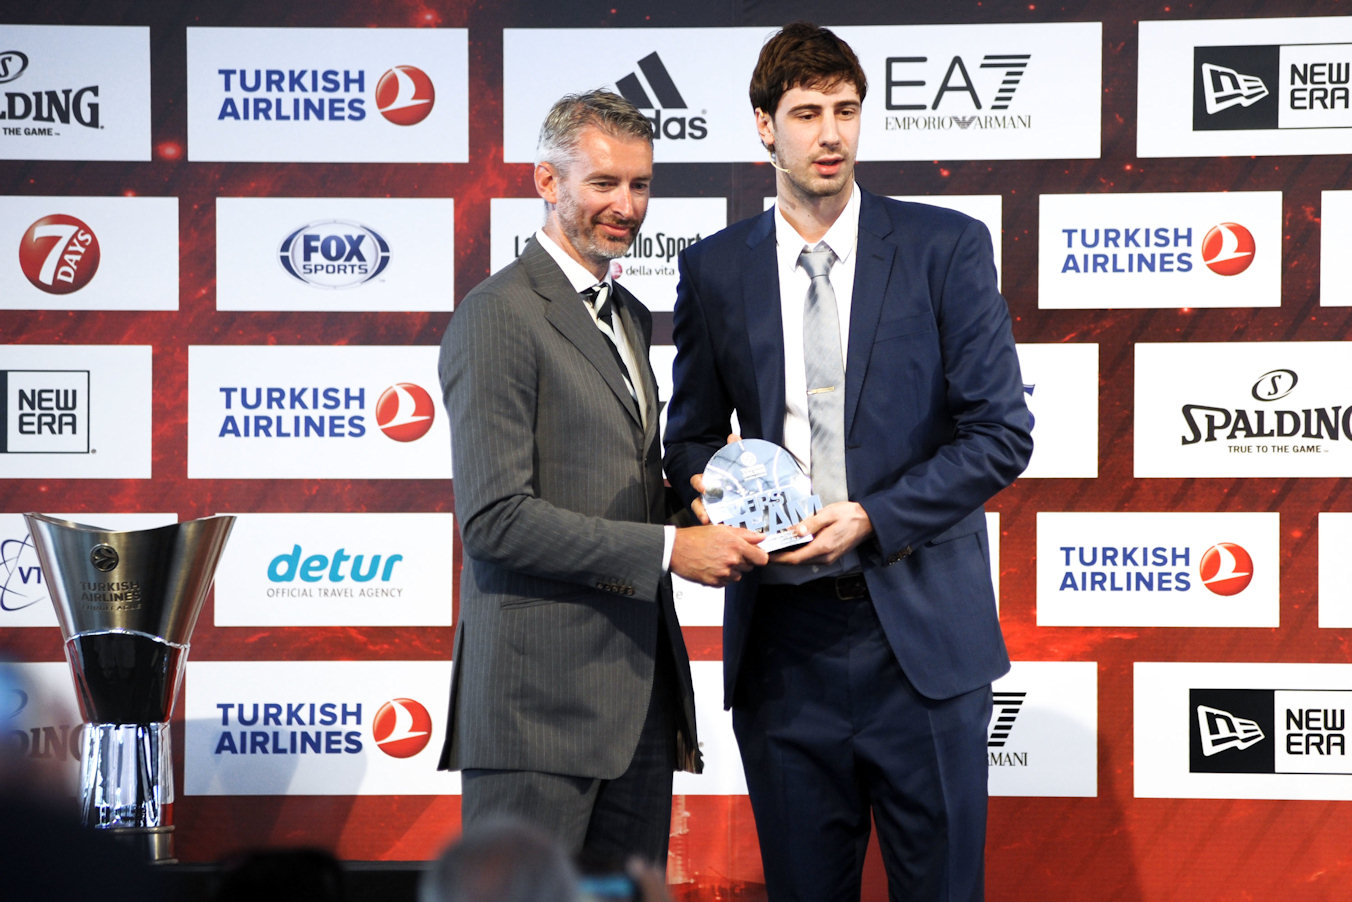 Ante Tomic - All-Euroleague First Team 2013-14  - Final Four Milan 2014